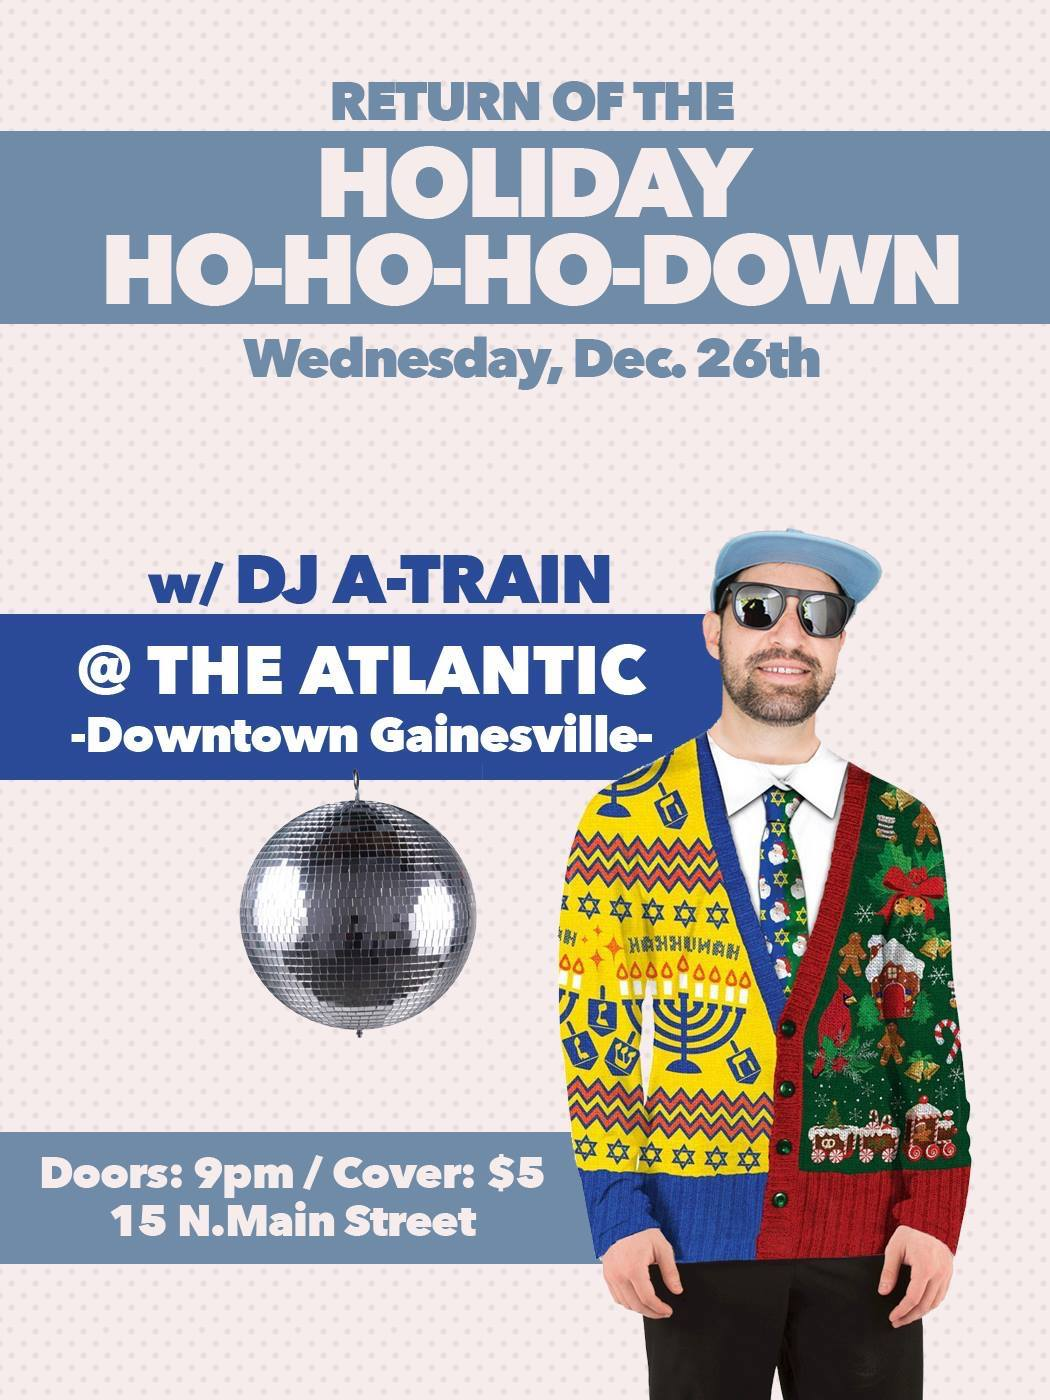 Return of the Holday Ho-Ho-Ho-Down DJ dance party w/  DJ A-TRAIN   Wednesday, December 26th The Atlantic Doors at 9PM $5